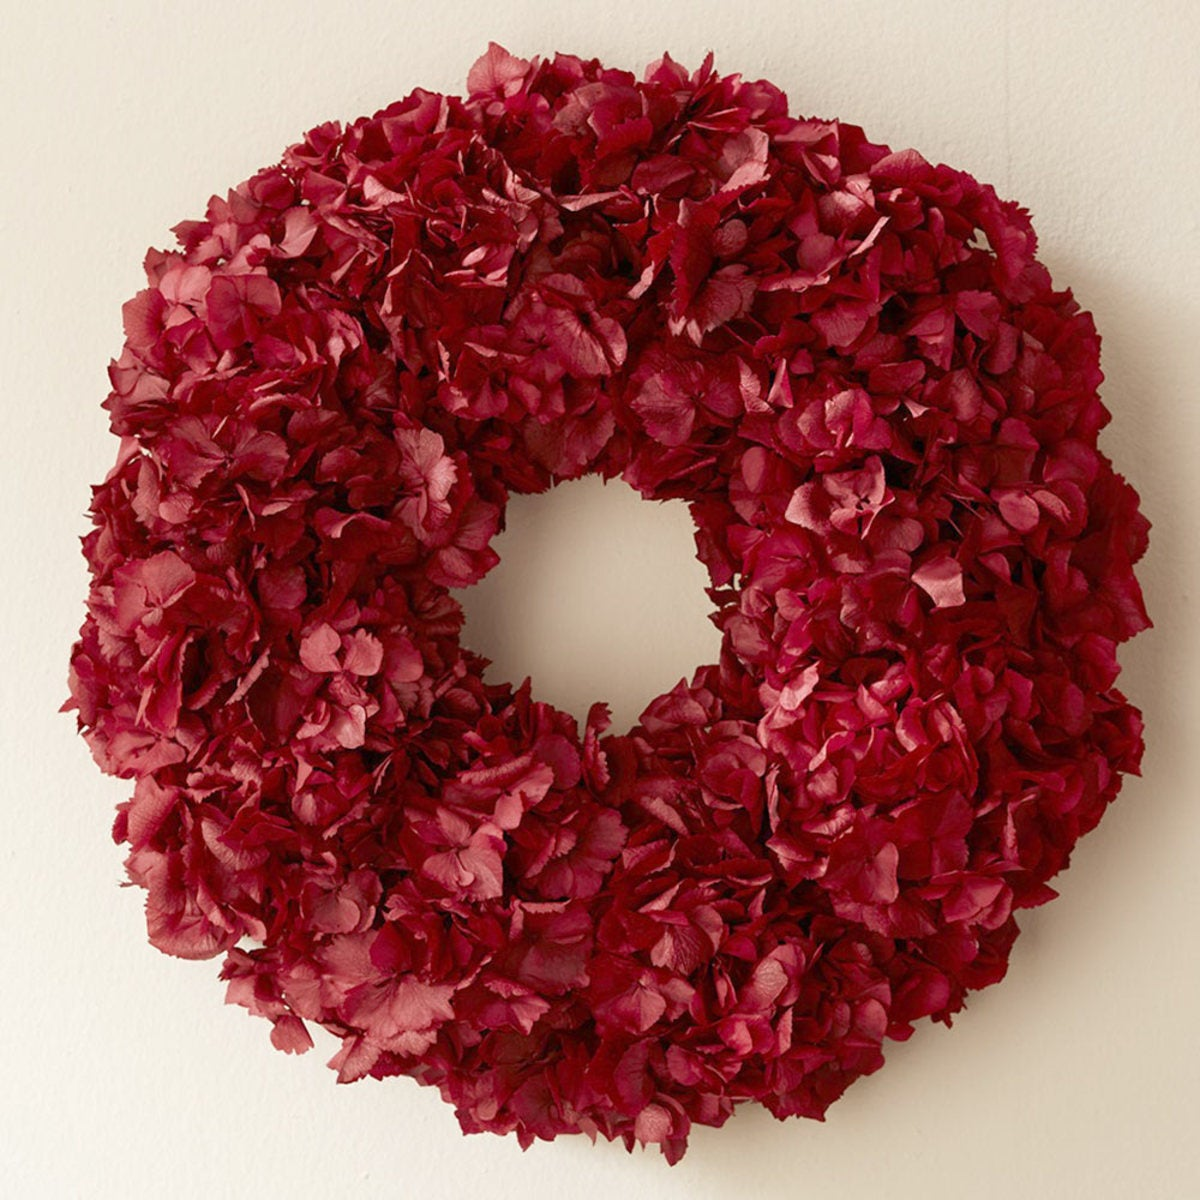 Red Hydrangea Wreath